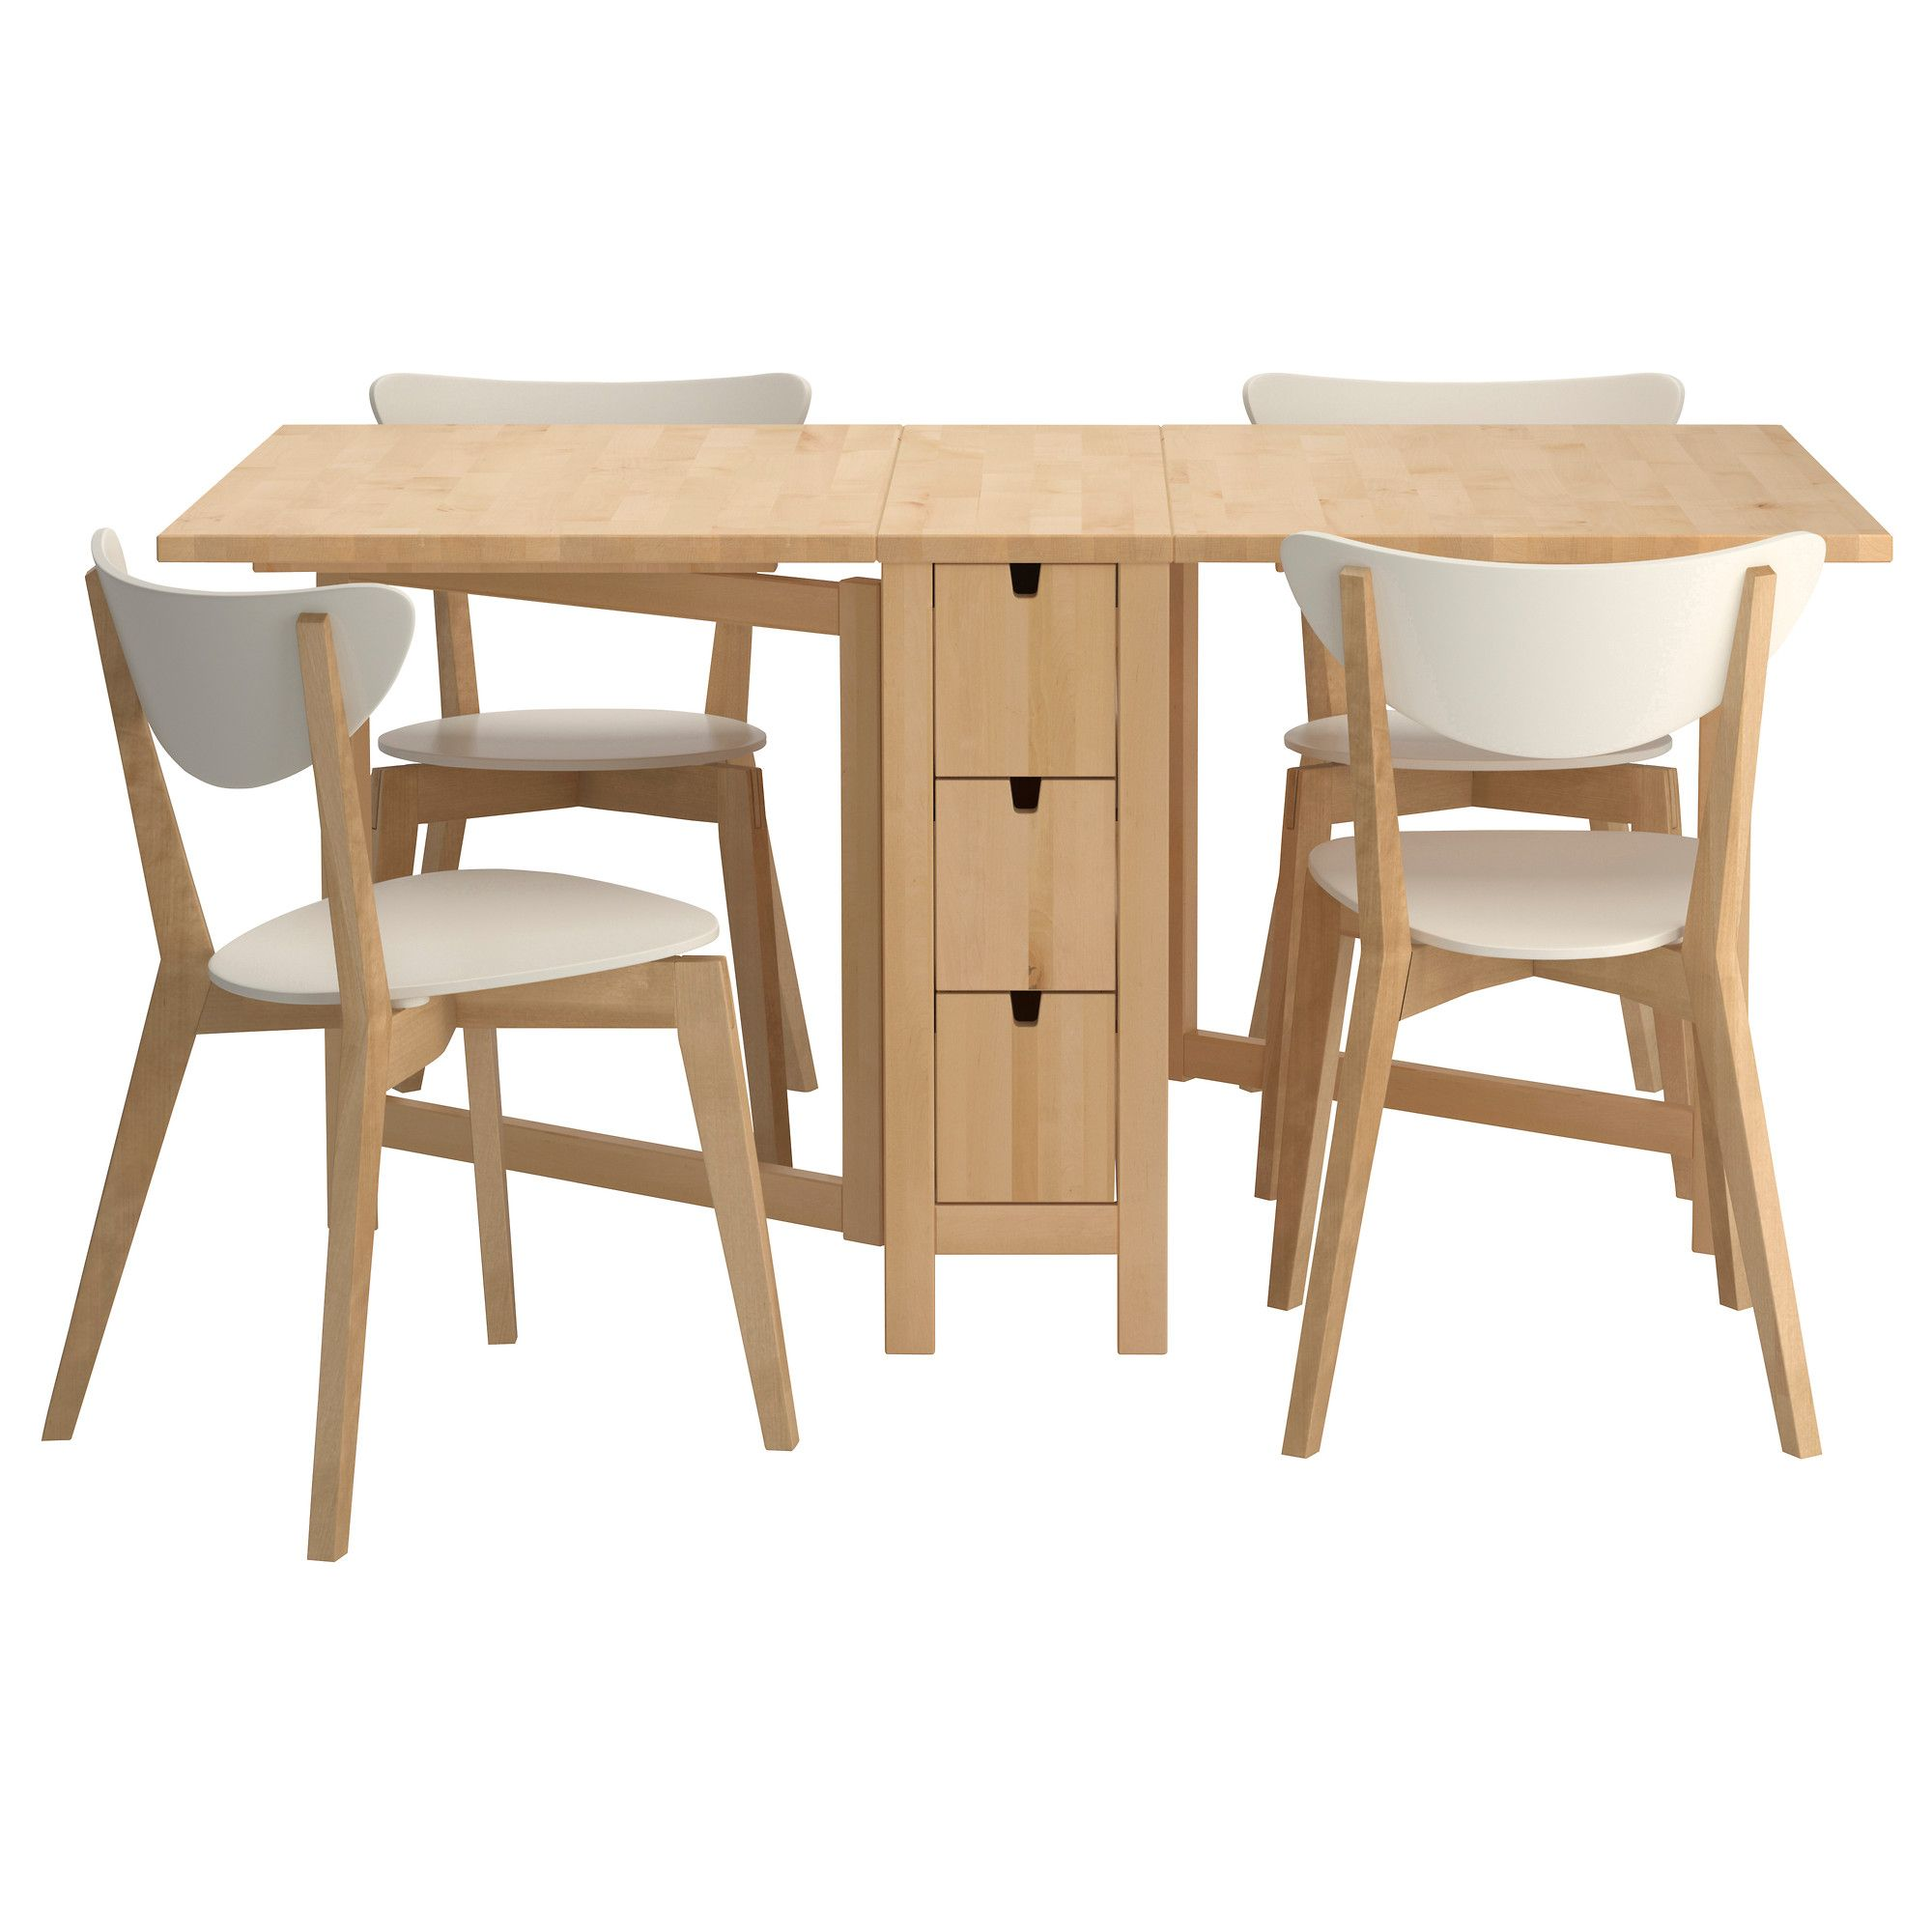 Norden nordmyra table and 4 chairs ikea for the love for Dining table set designs